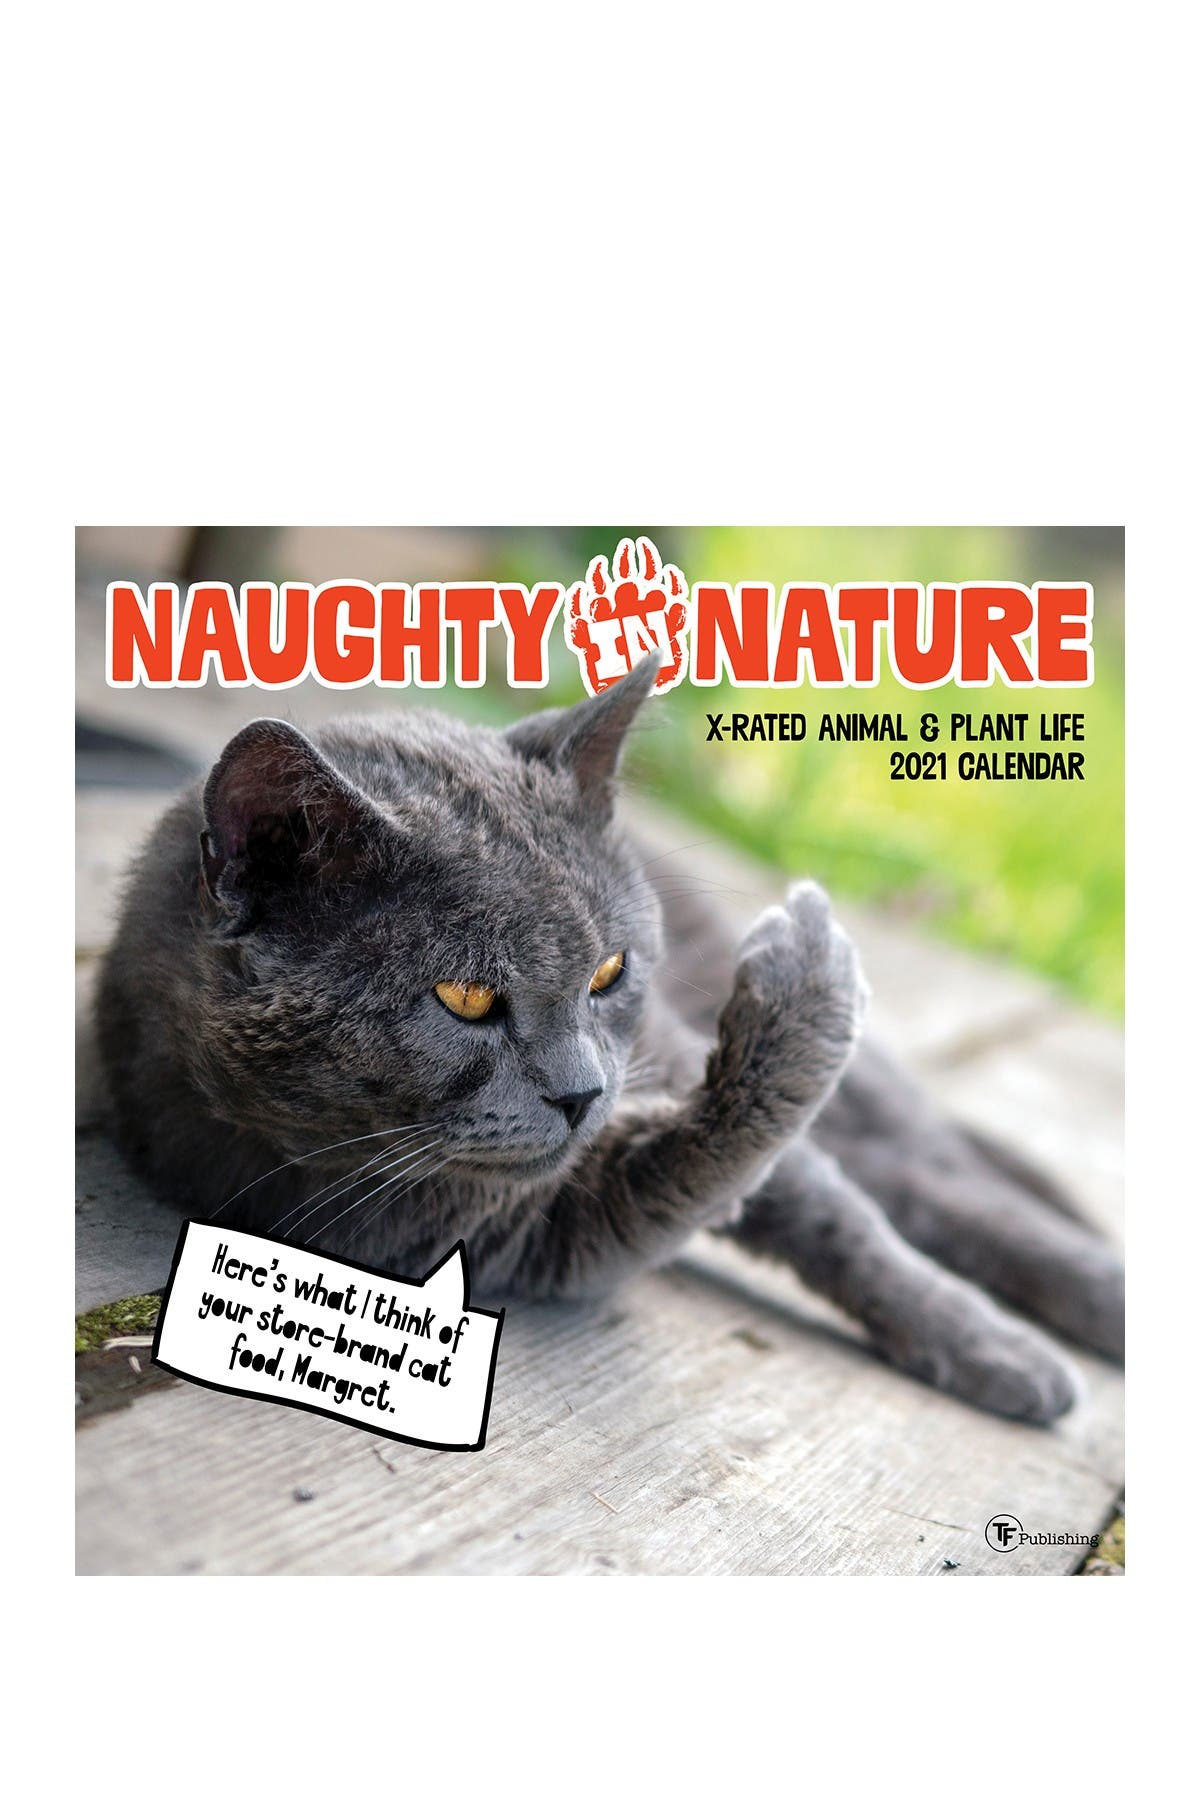 Image of TF Publishing 2021 Naughty in Nature Wall Calendar